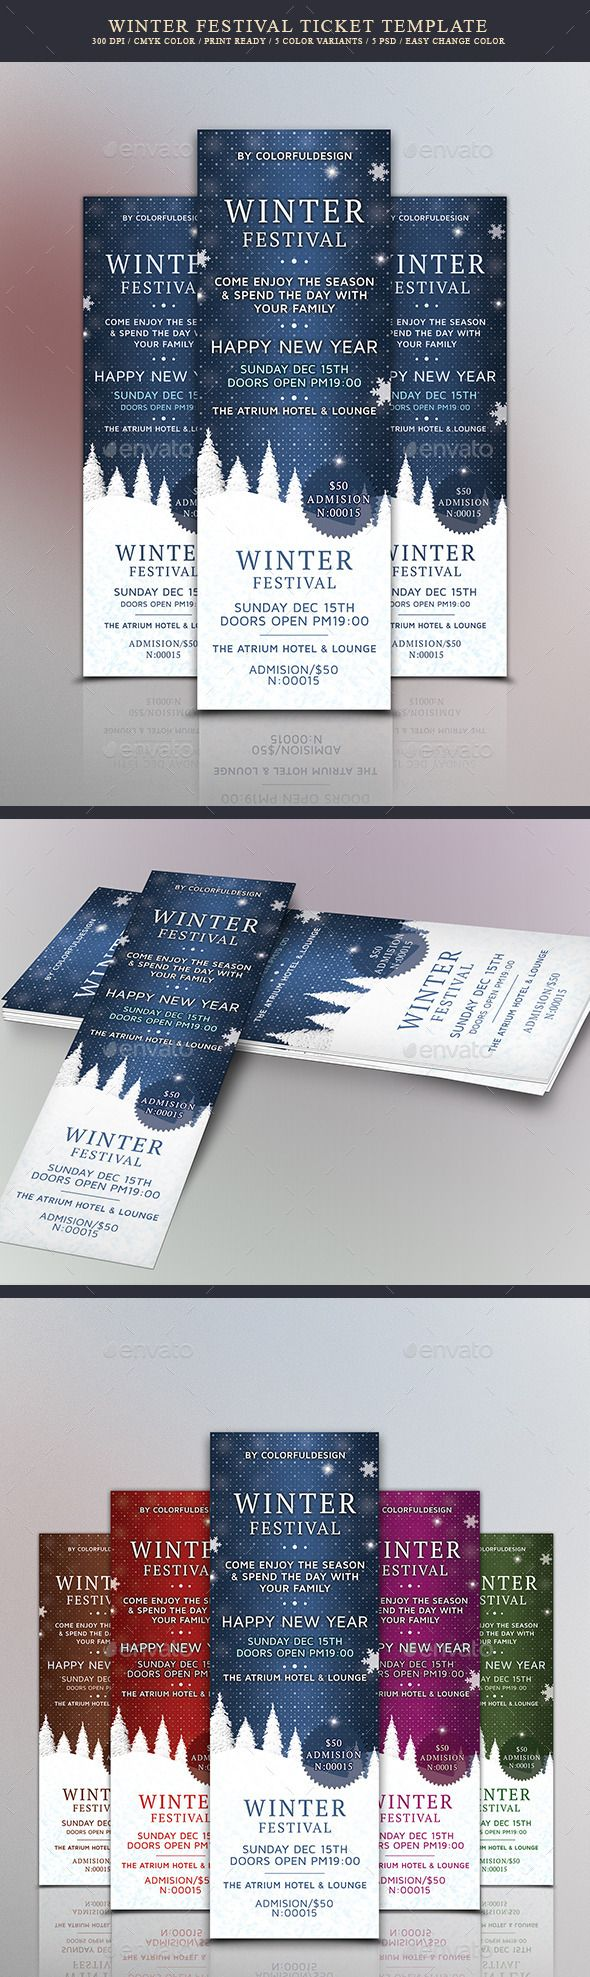 Concert Ticket Template Free Download Cool 139 Best Invitation Design Images On Pinterest  Christmas Parties .